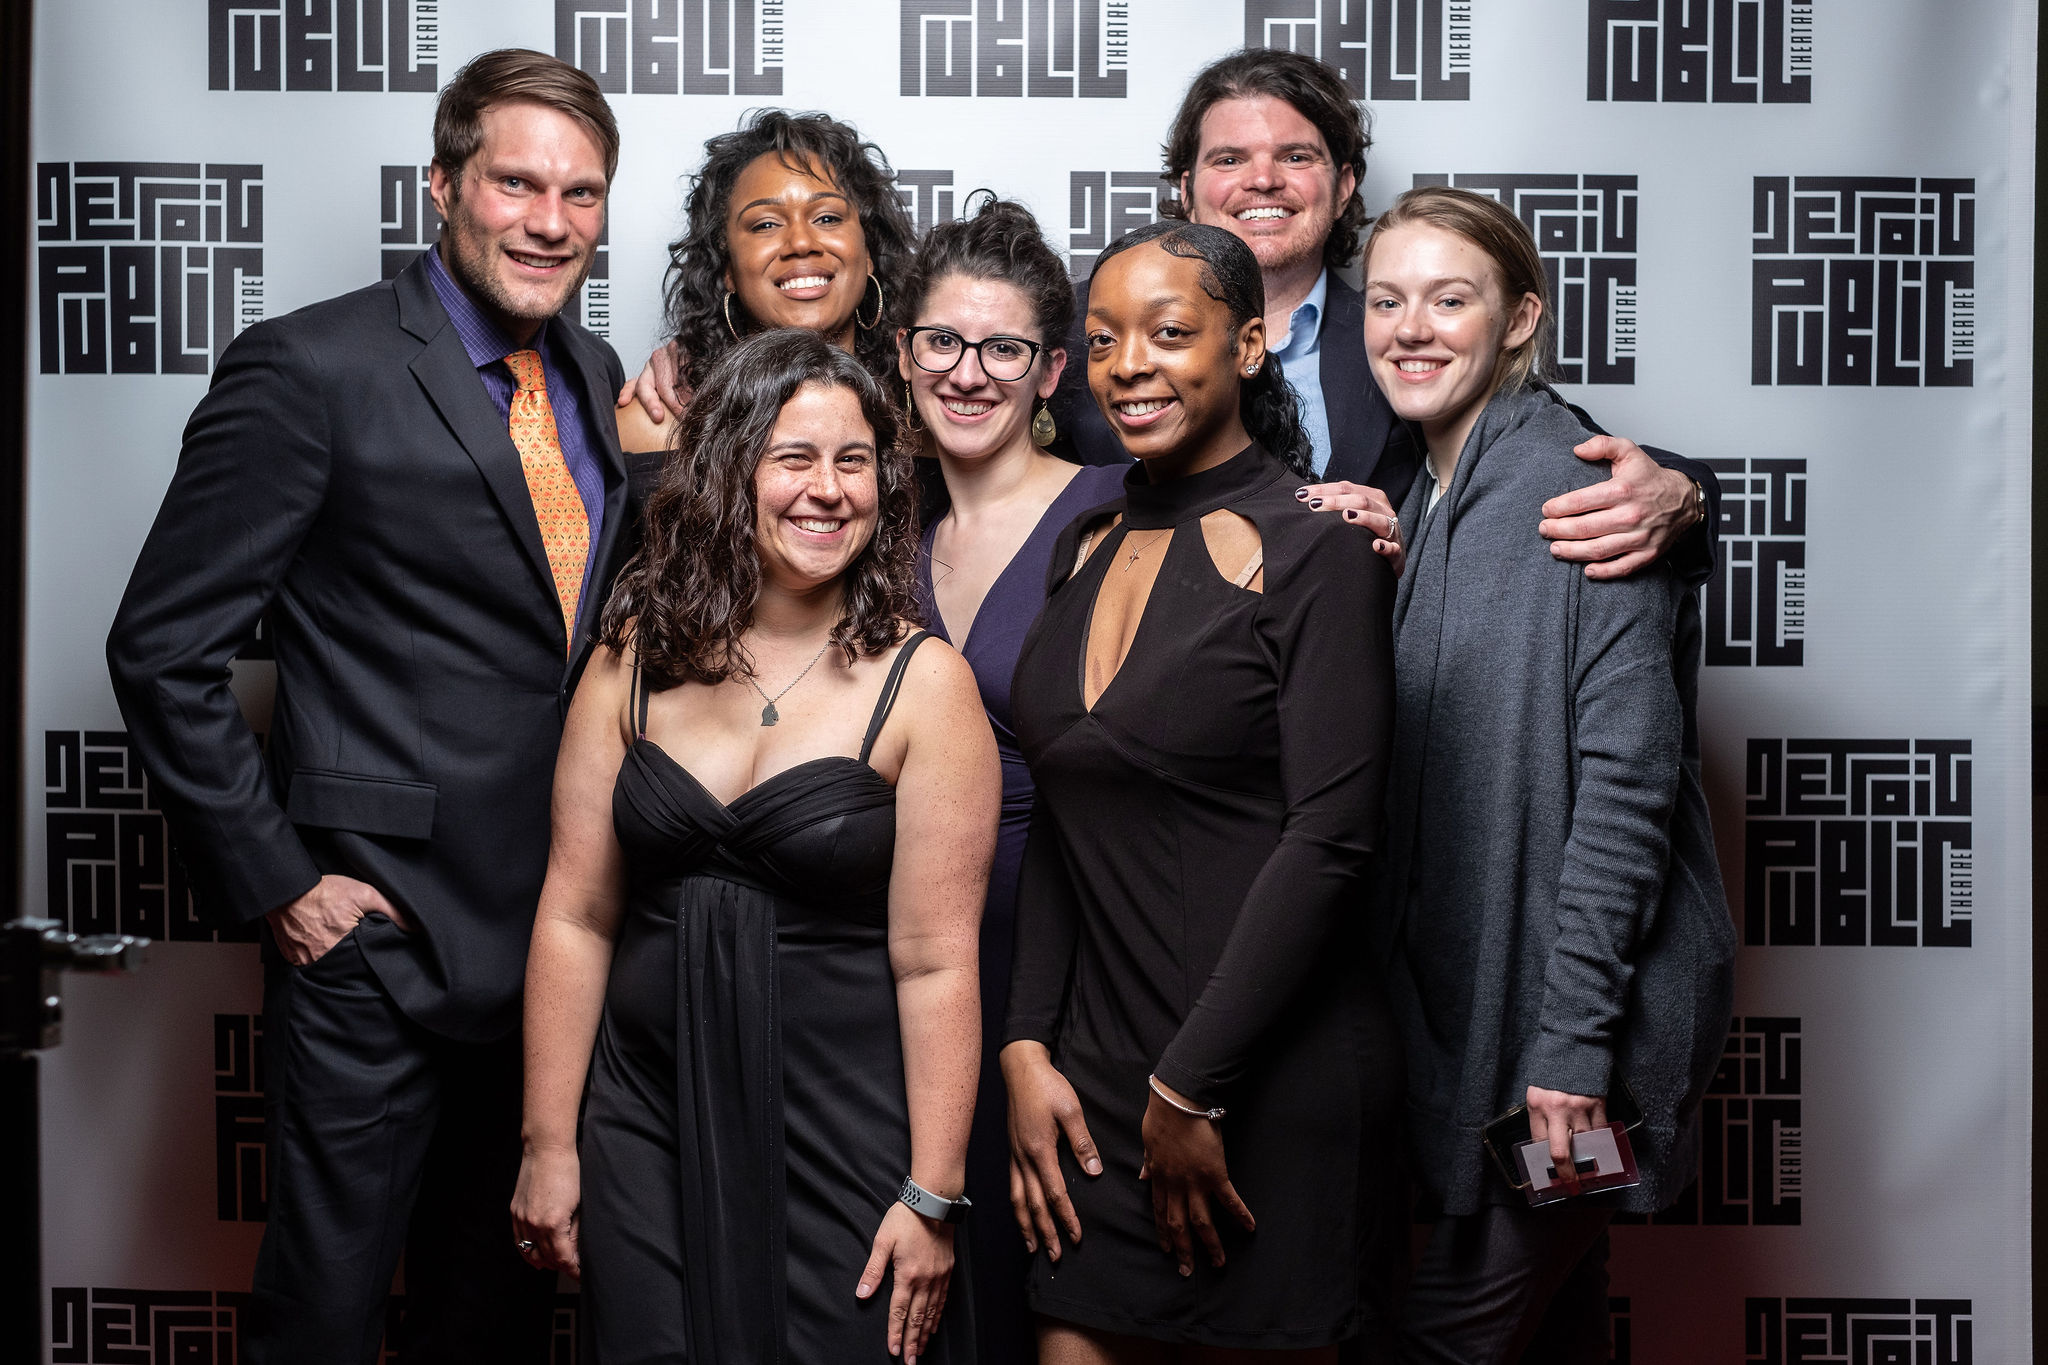 Alumni and facilitators at DPT's 4th Annual Unabashed Ask for Cash Bash. Photo by Chuk Nowak.